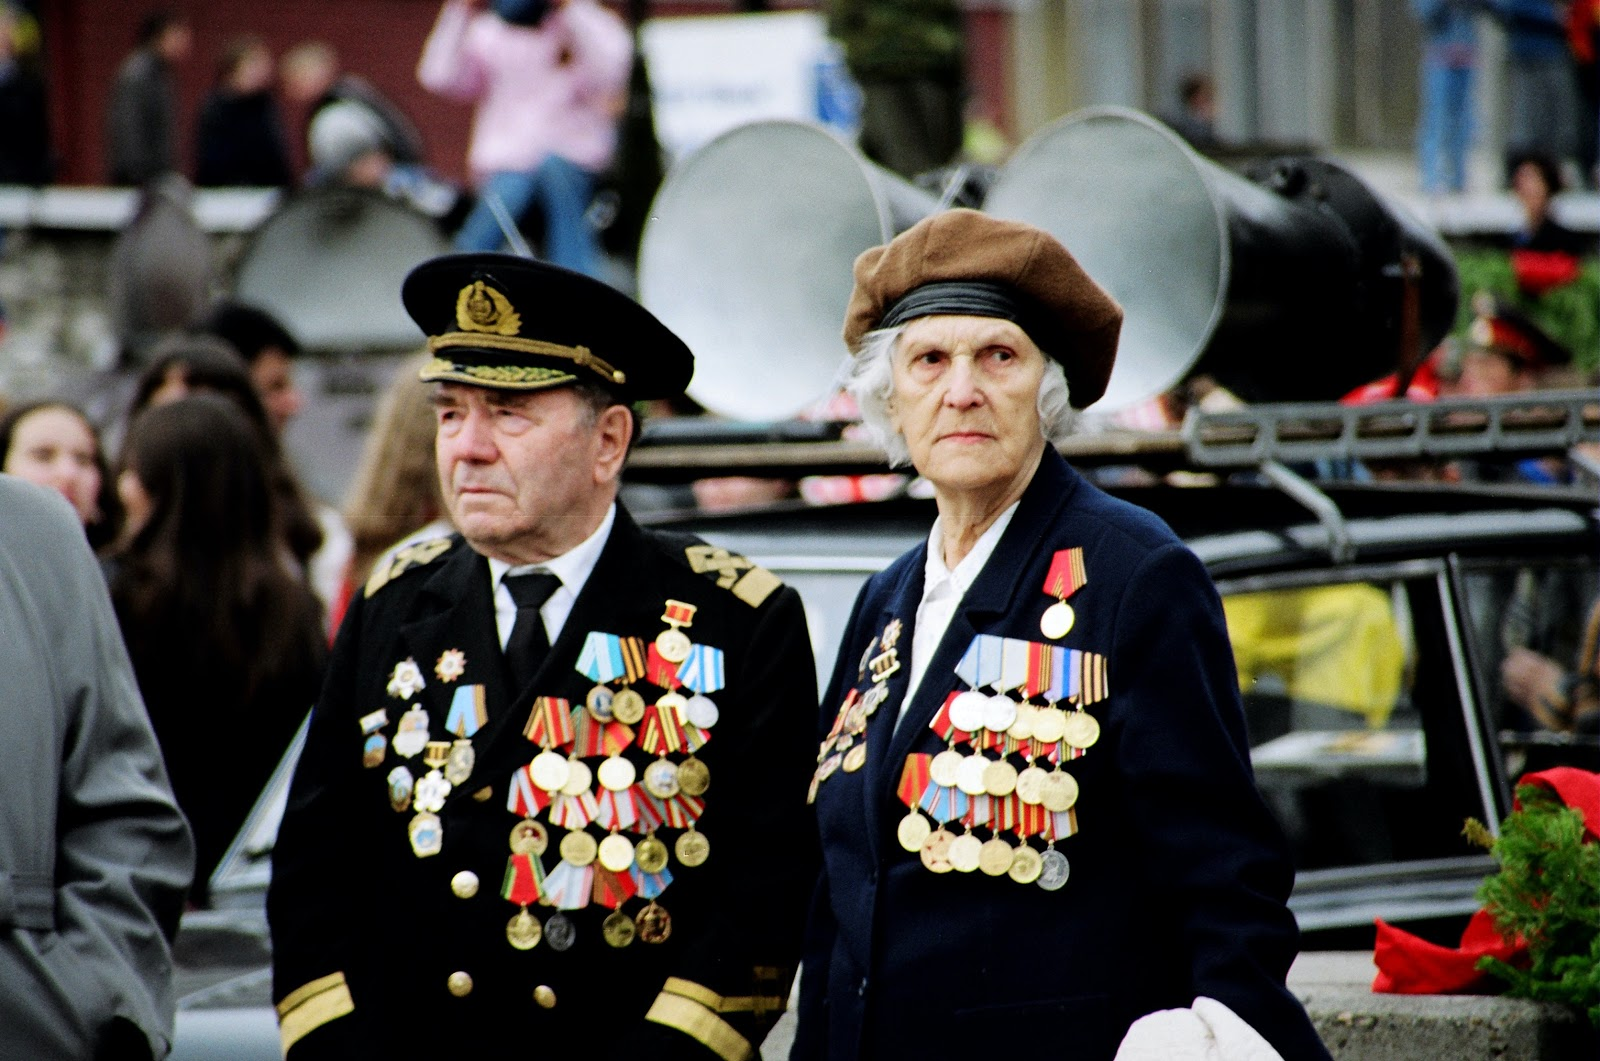 Two veterans with lots of medals